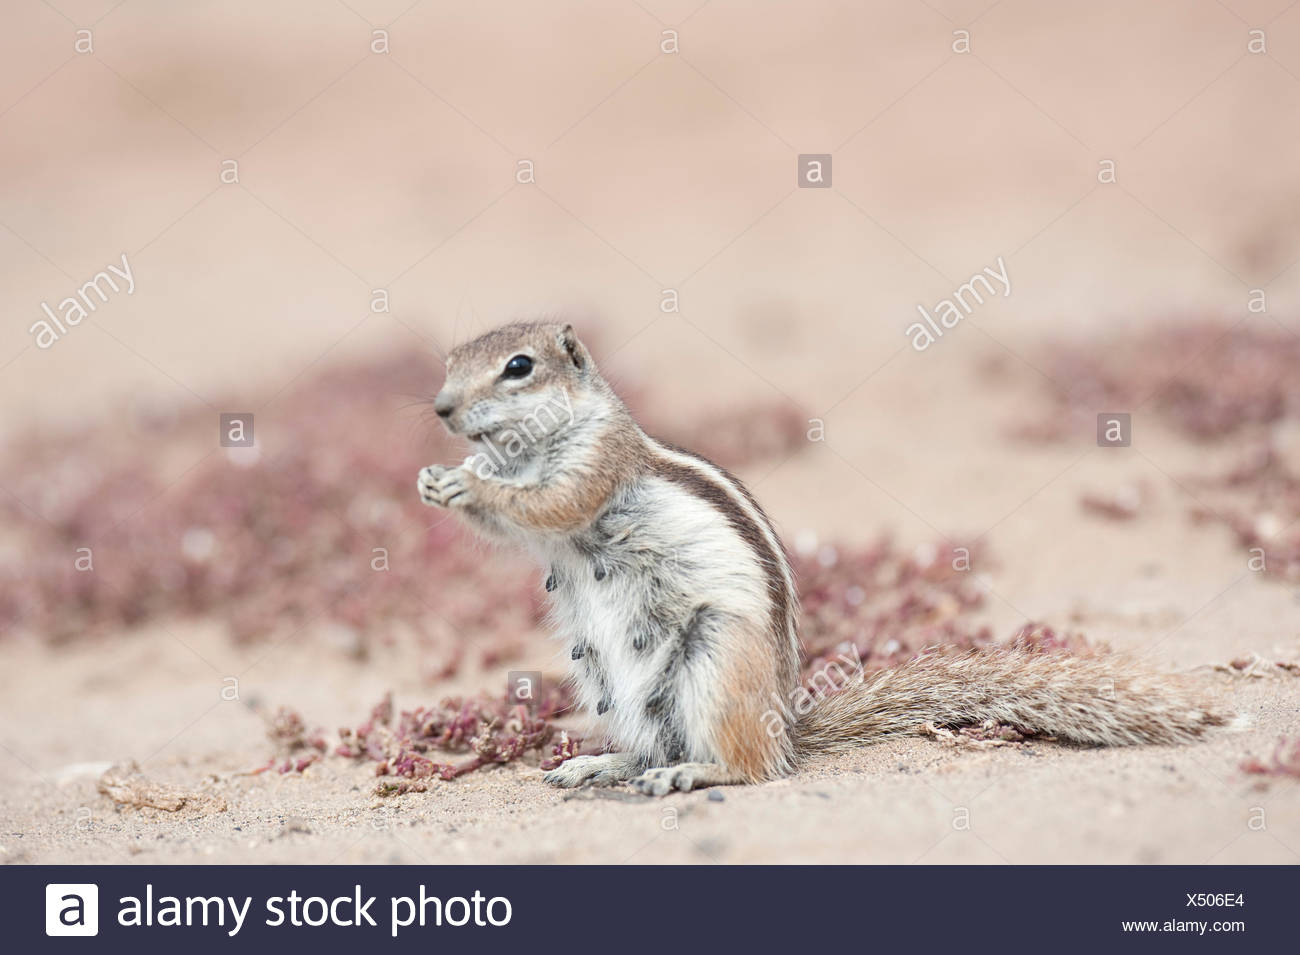 Barbary ground squirrel, Fuerteventura, Canary Islands - Stock Image